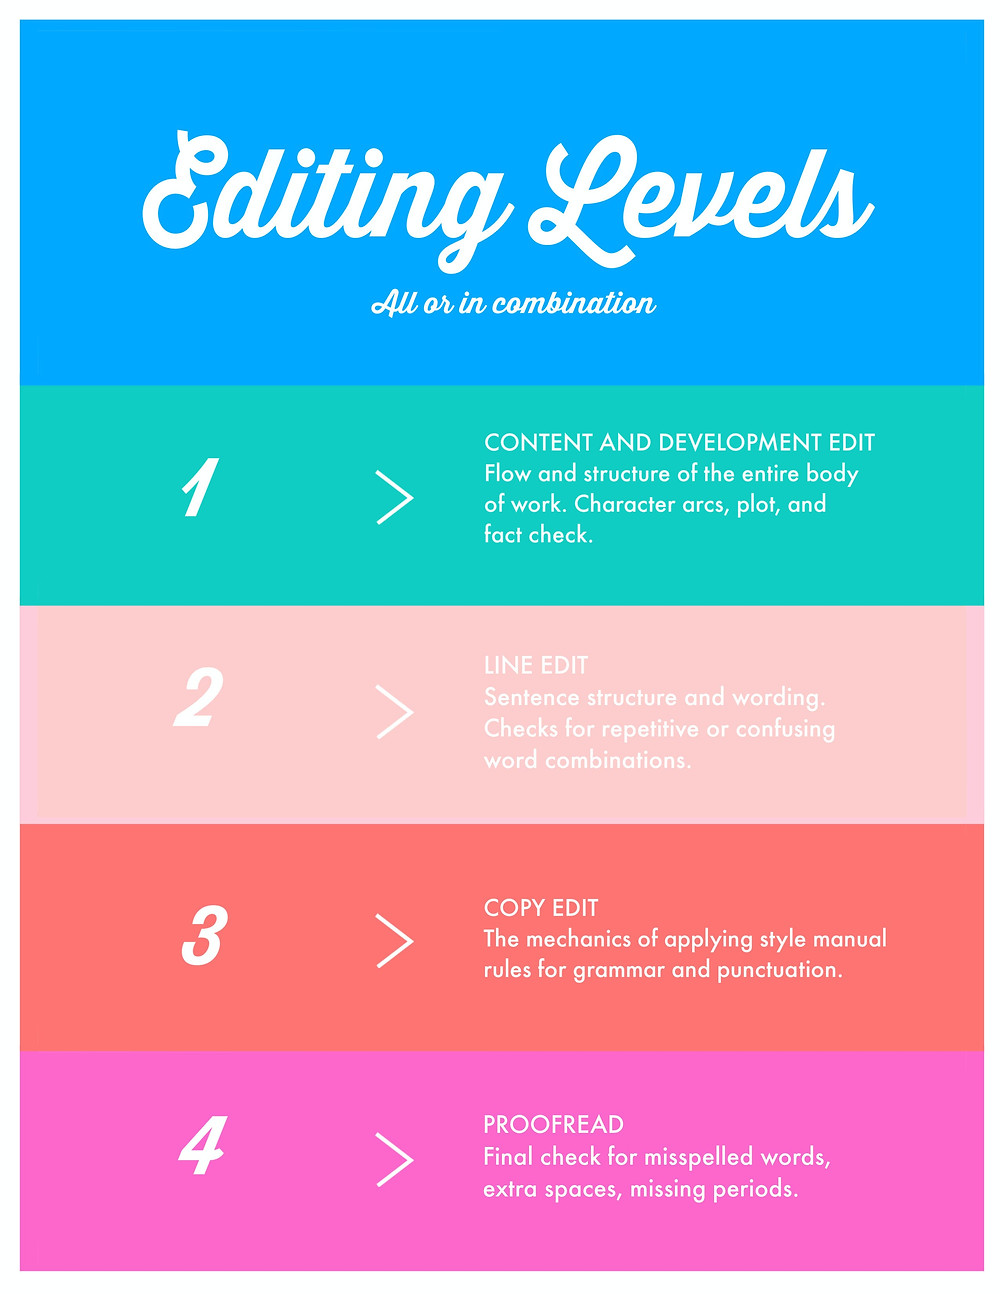 A colorful graphic of editing levels: content and development edit, line edit, copyedit, and proofread.